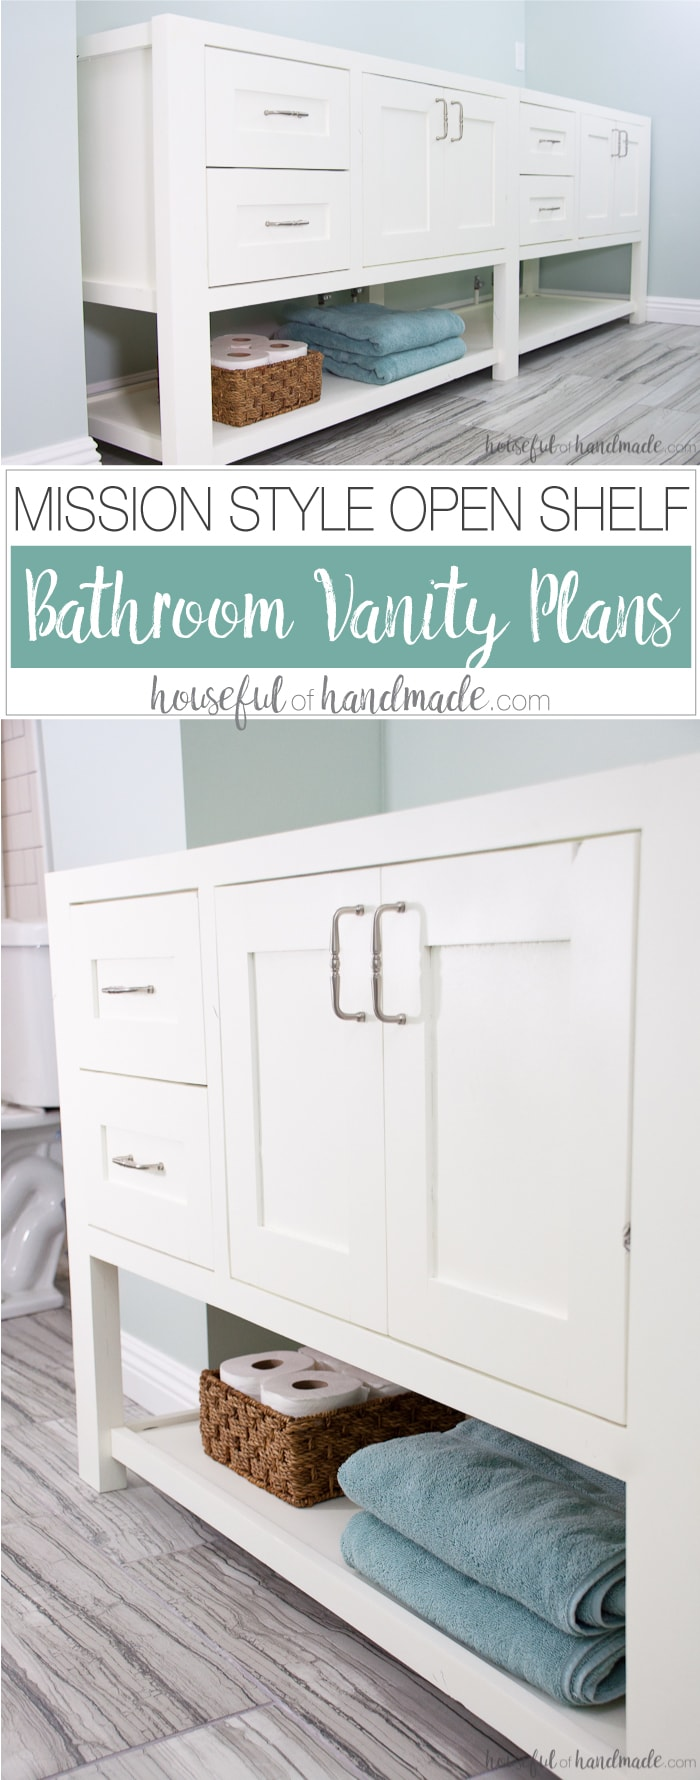 Mission Style Open Shelf Bathroom Vanity Build Plans - Houseful of ...